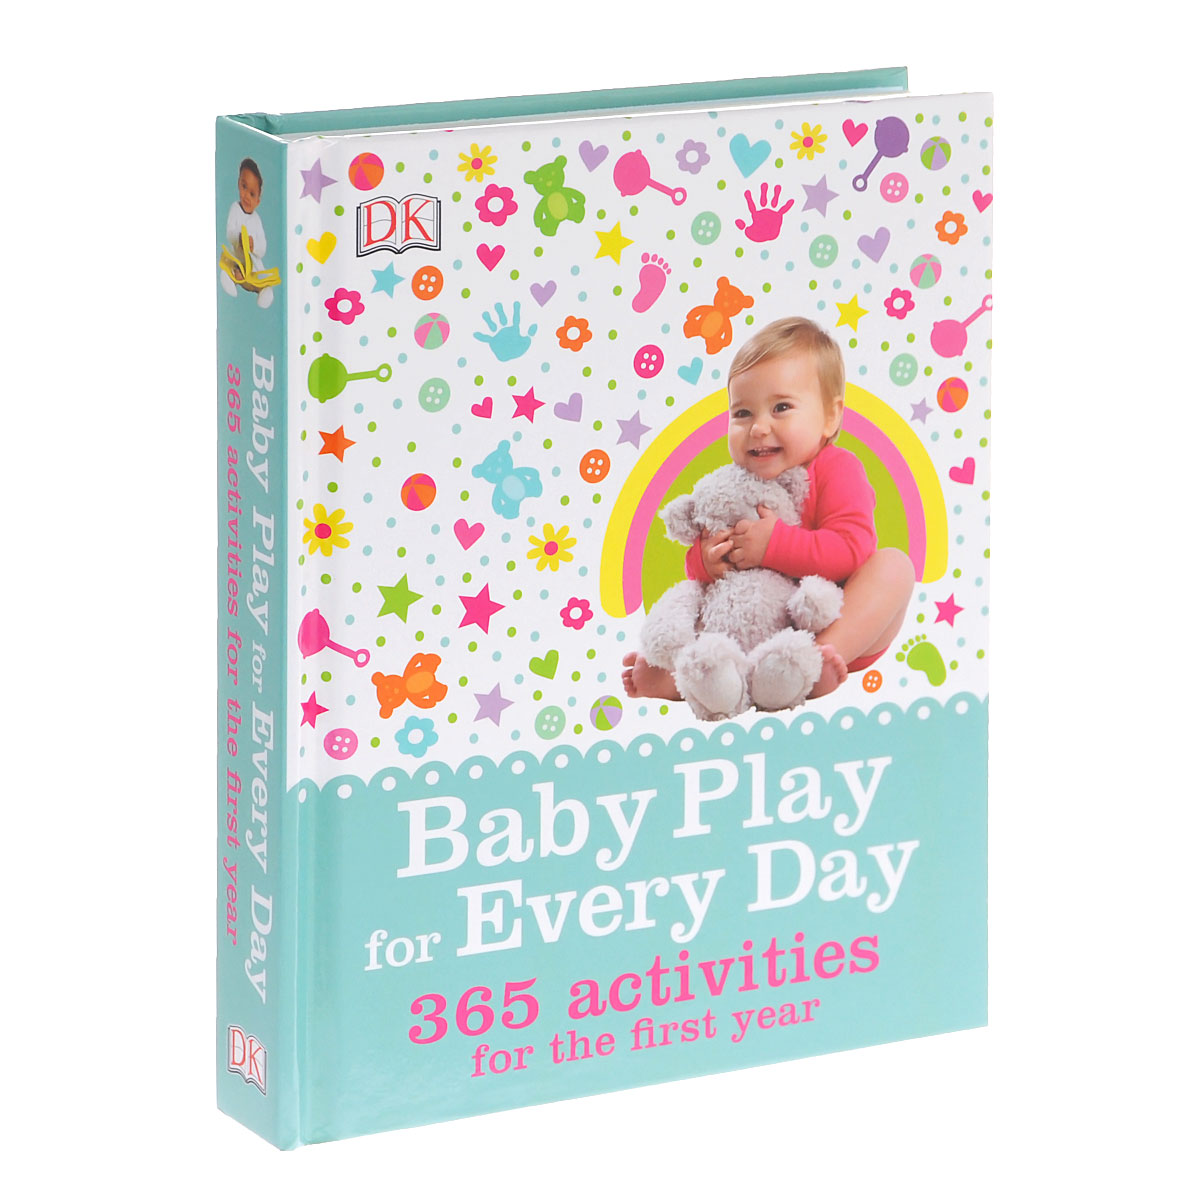 Baby Play for Every Day: 365 Activities for the First Year серьги herald percy кафф цепочка тройной